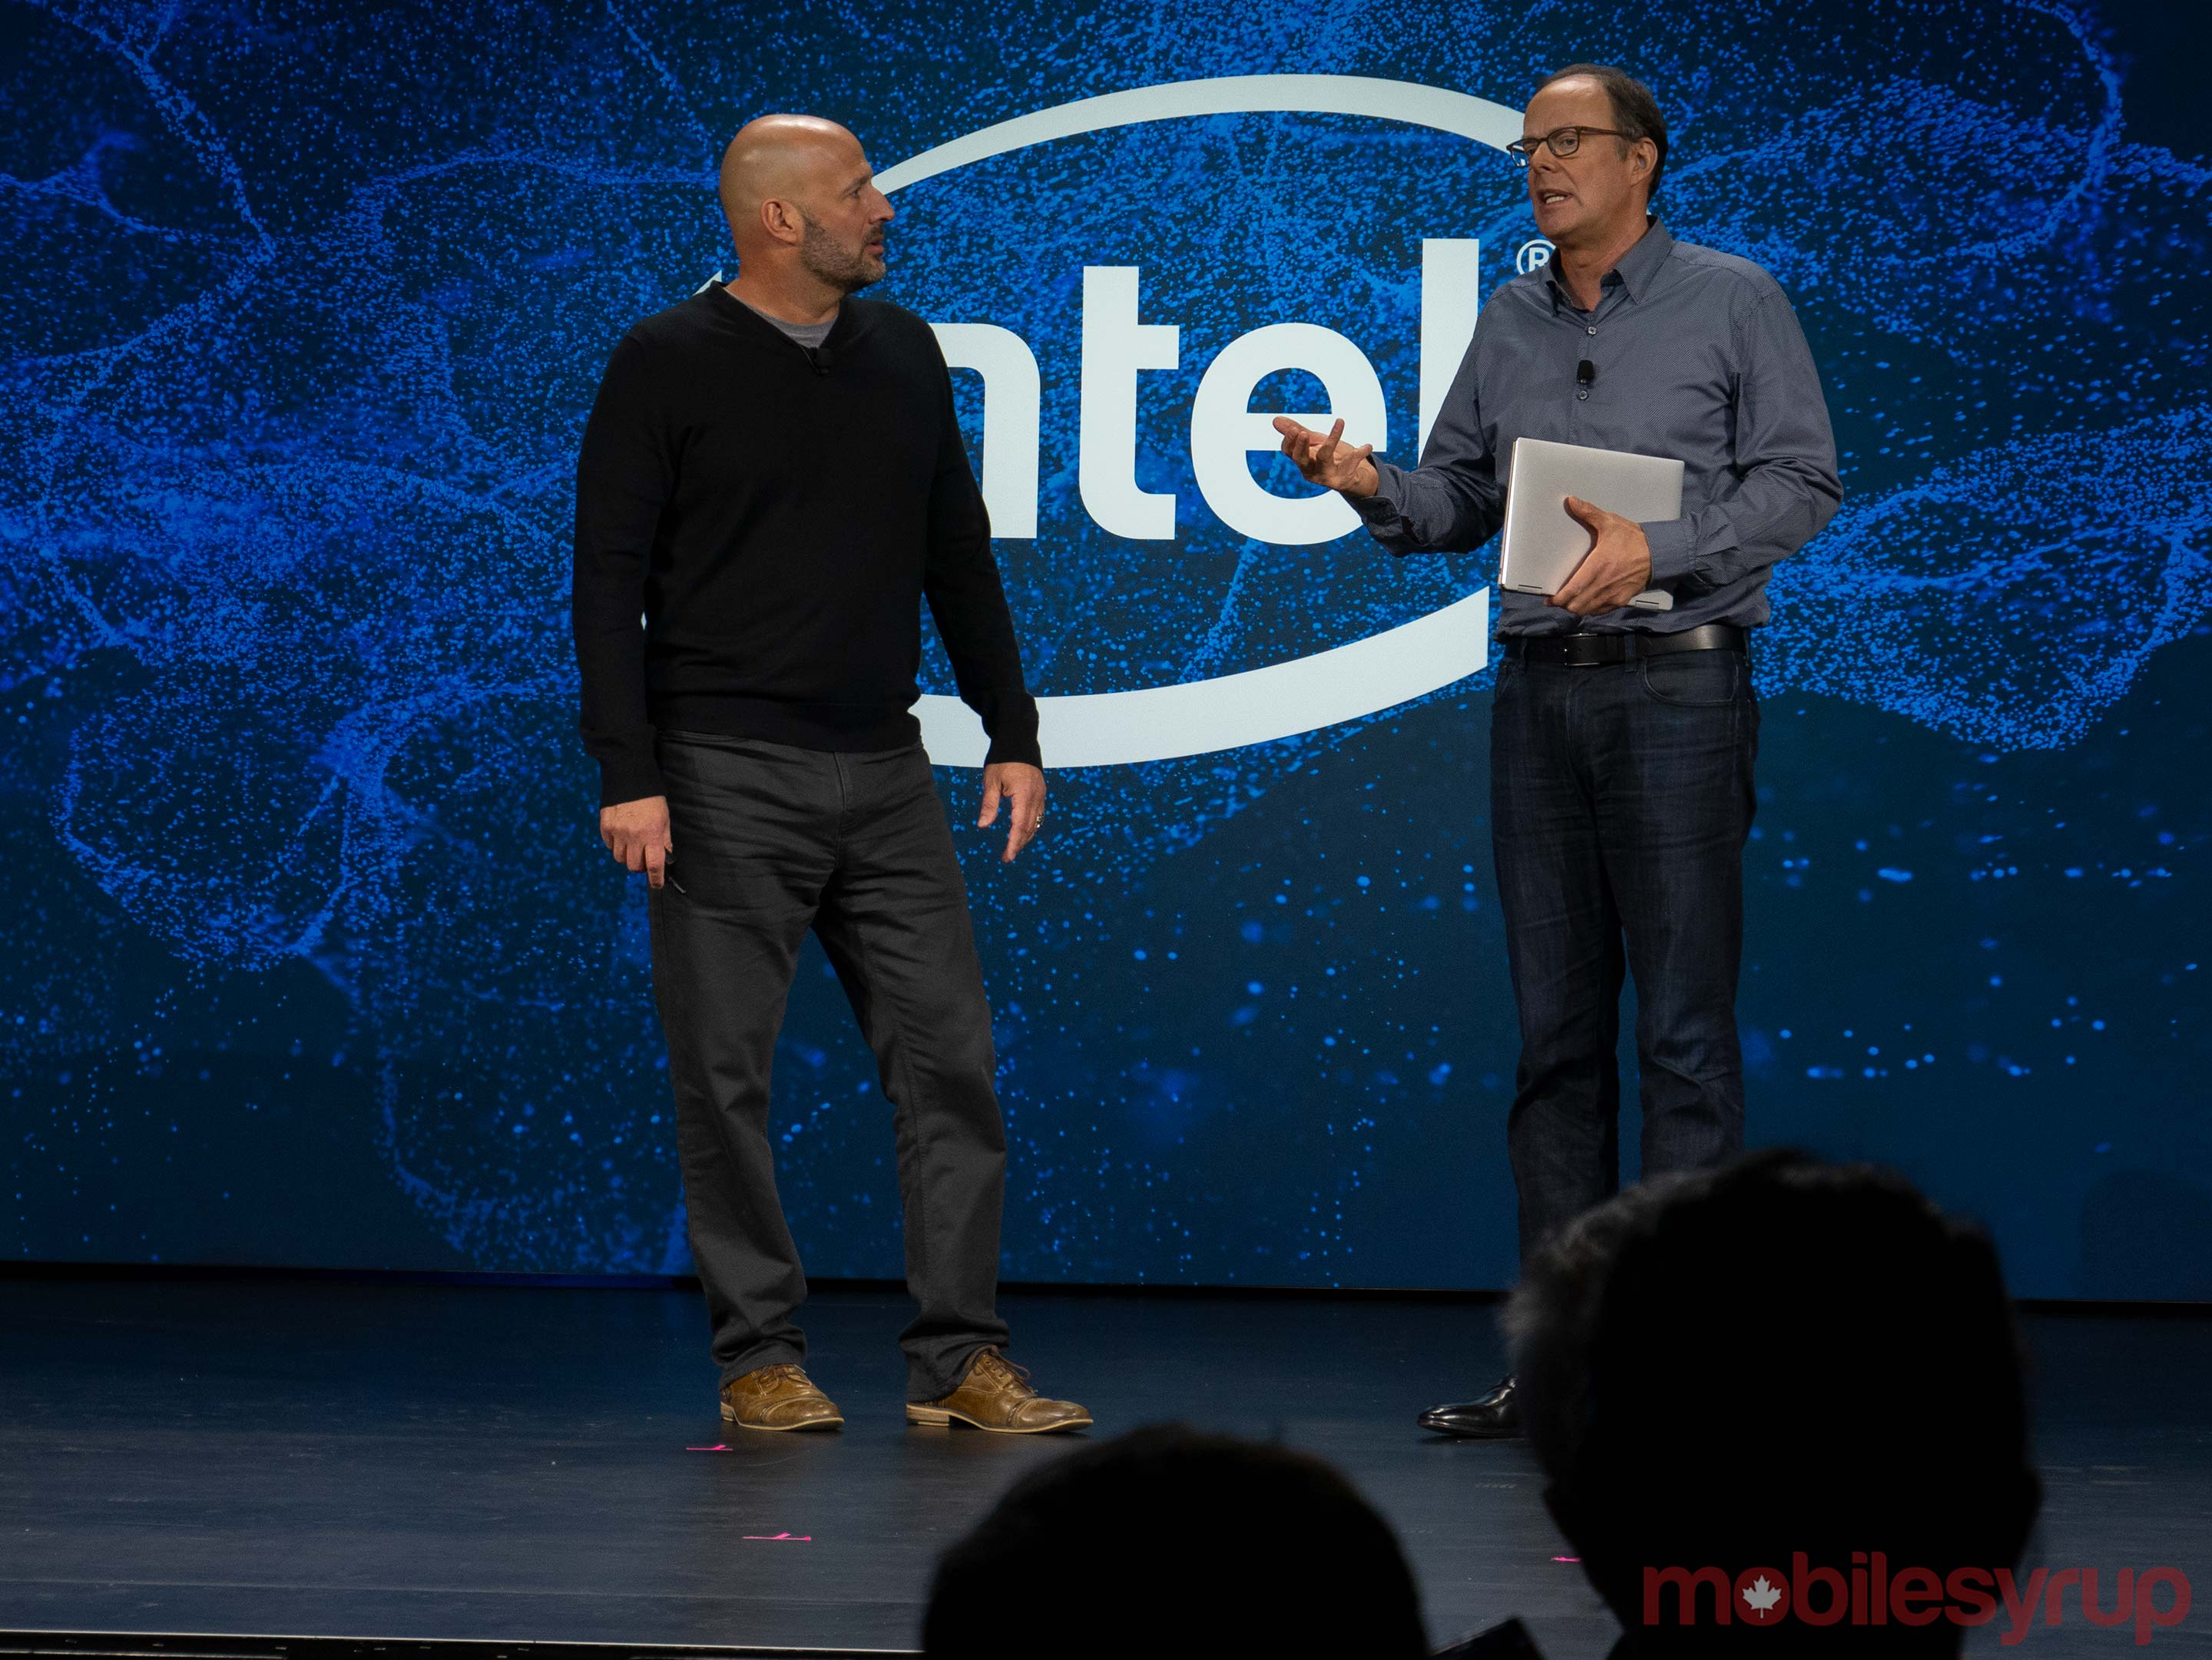 CES 2019: Intel unveils 10nm PC products for AI and 5G